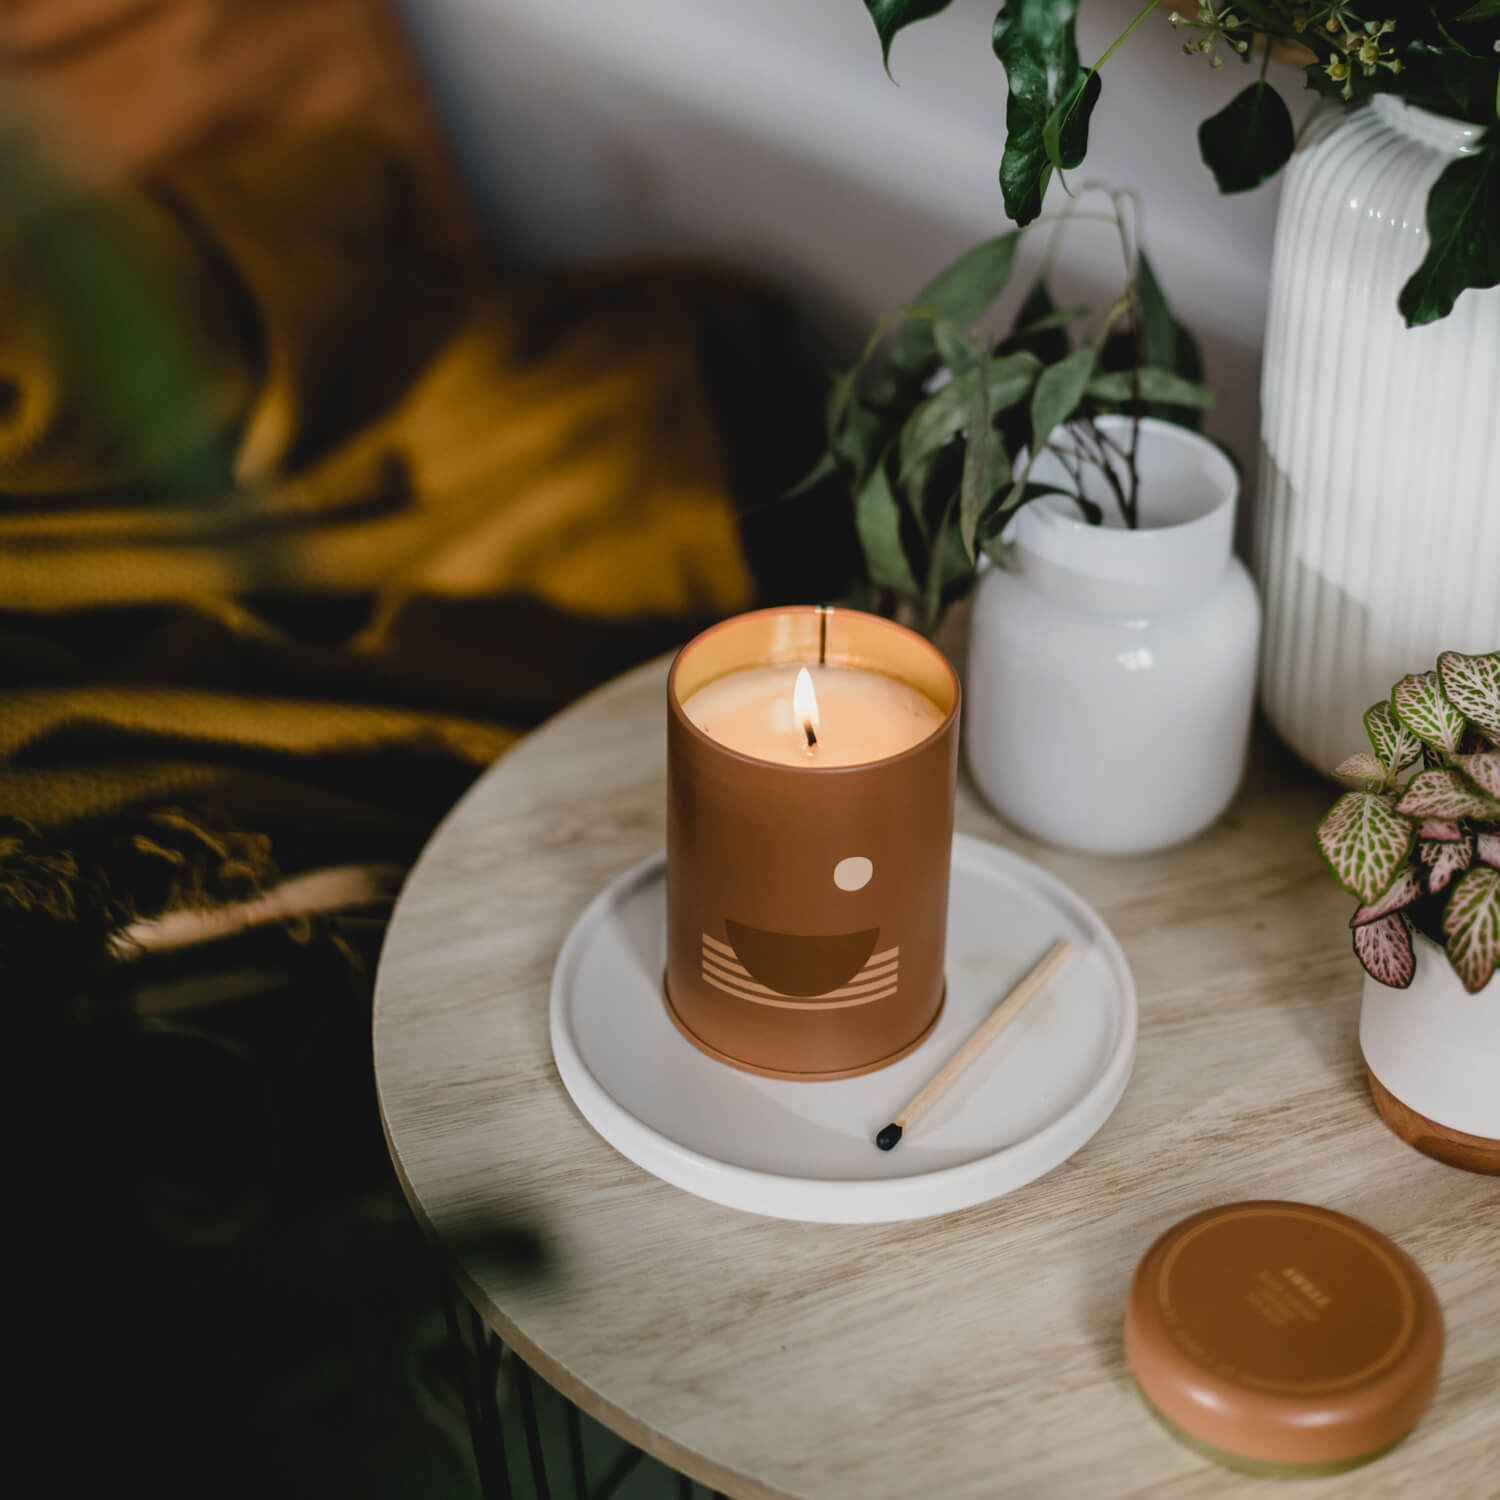 Swell Candle by P.F. Candle Co